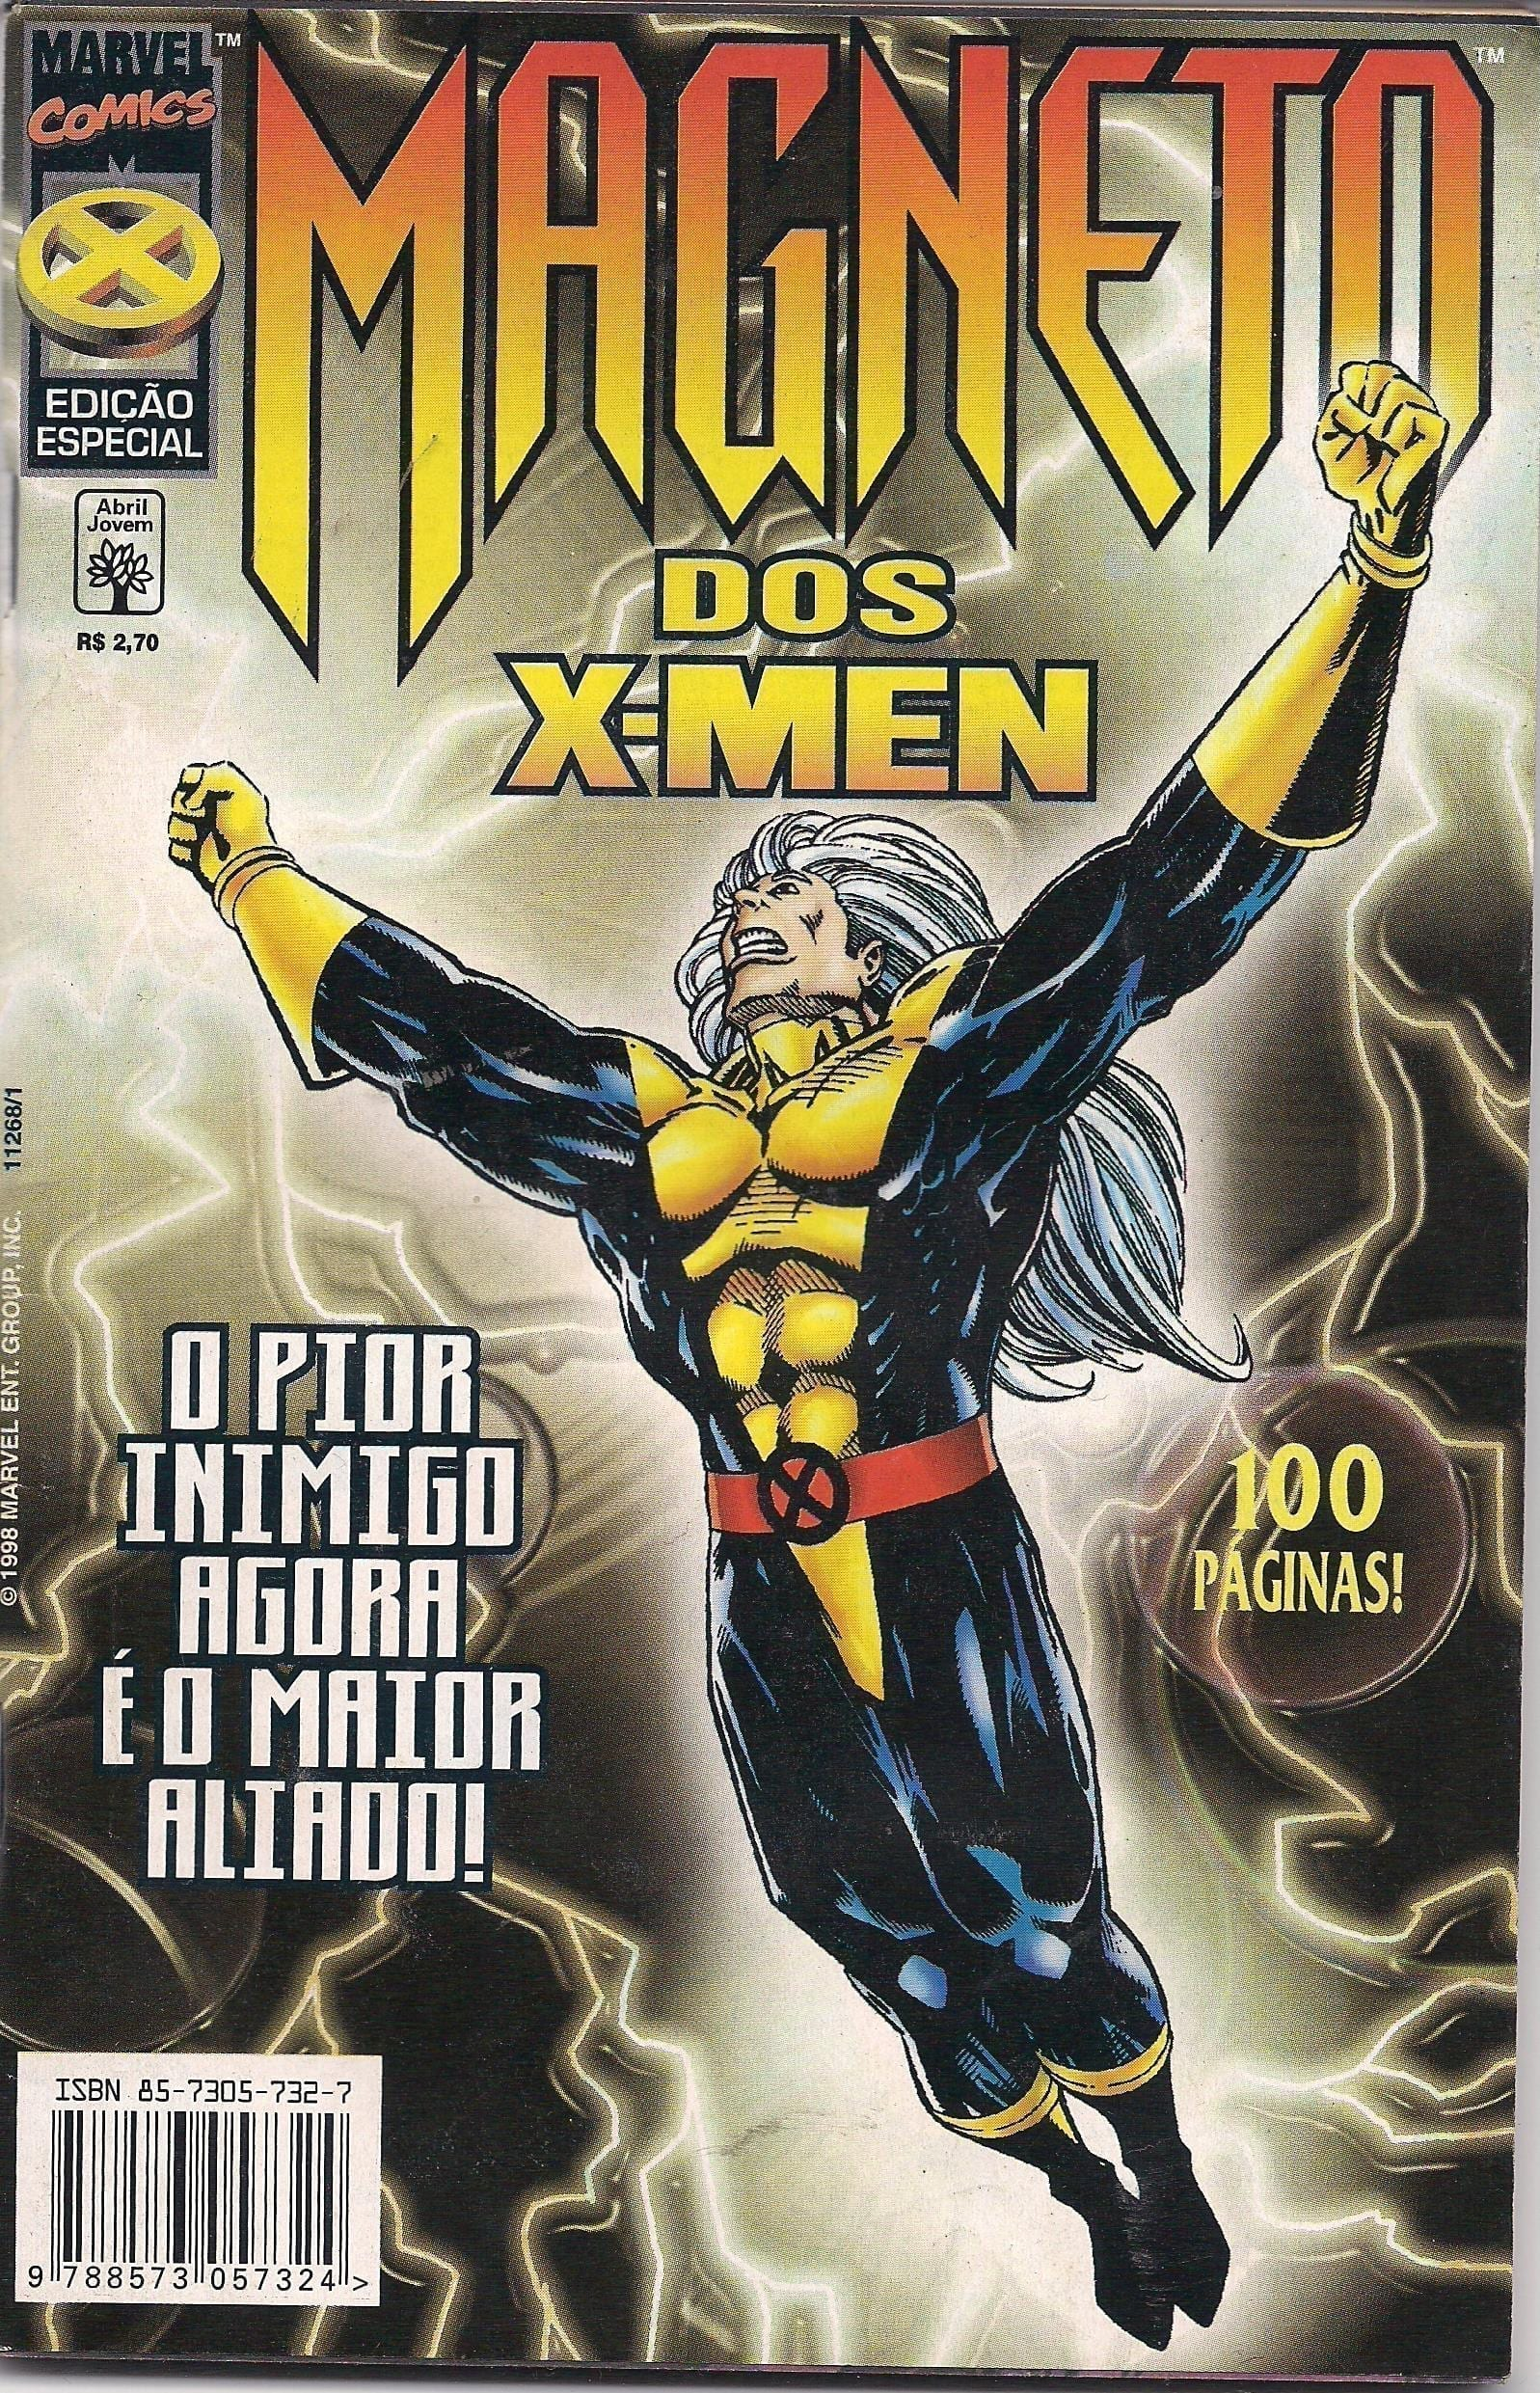 <span>Magneto dos X-Men 1</span>